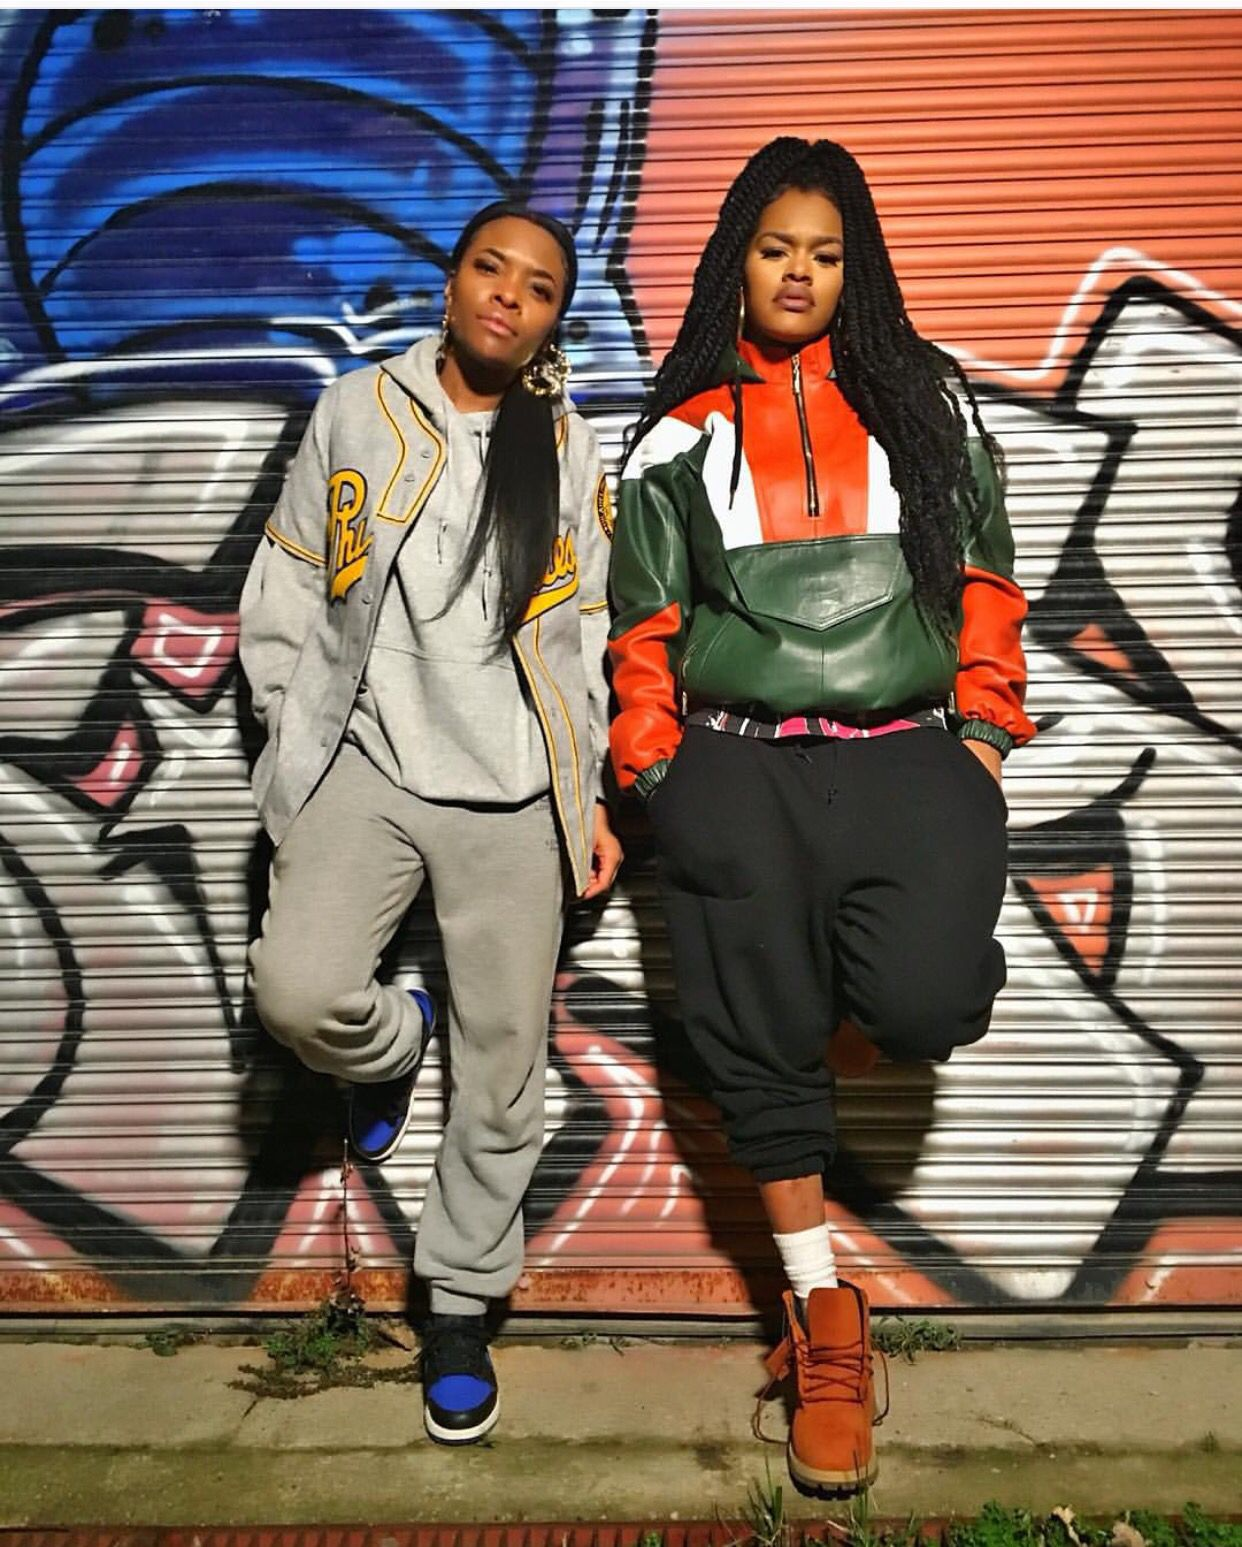 Teyana and friend street style inspiration | Tomboy ...